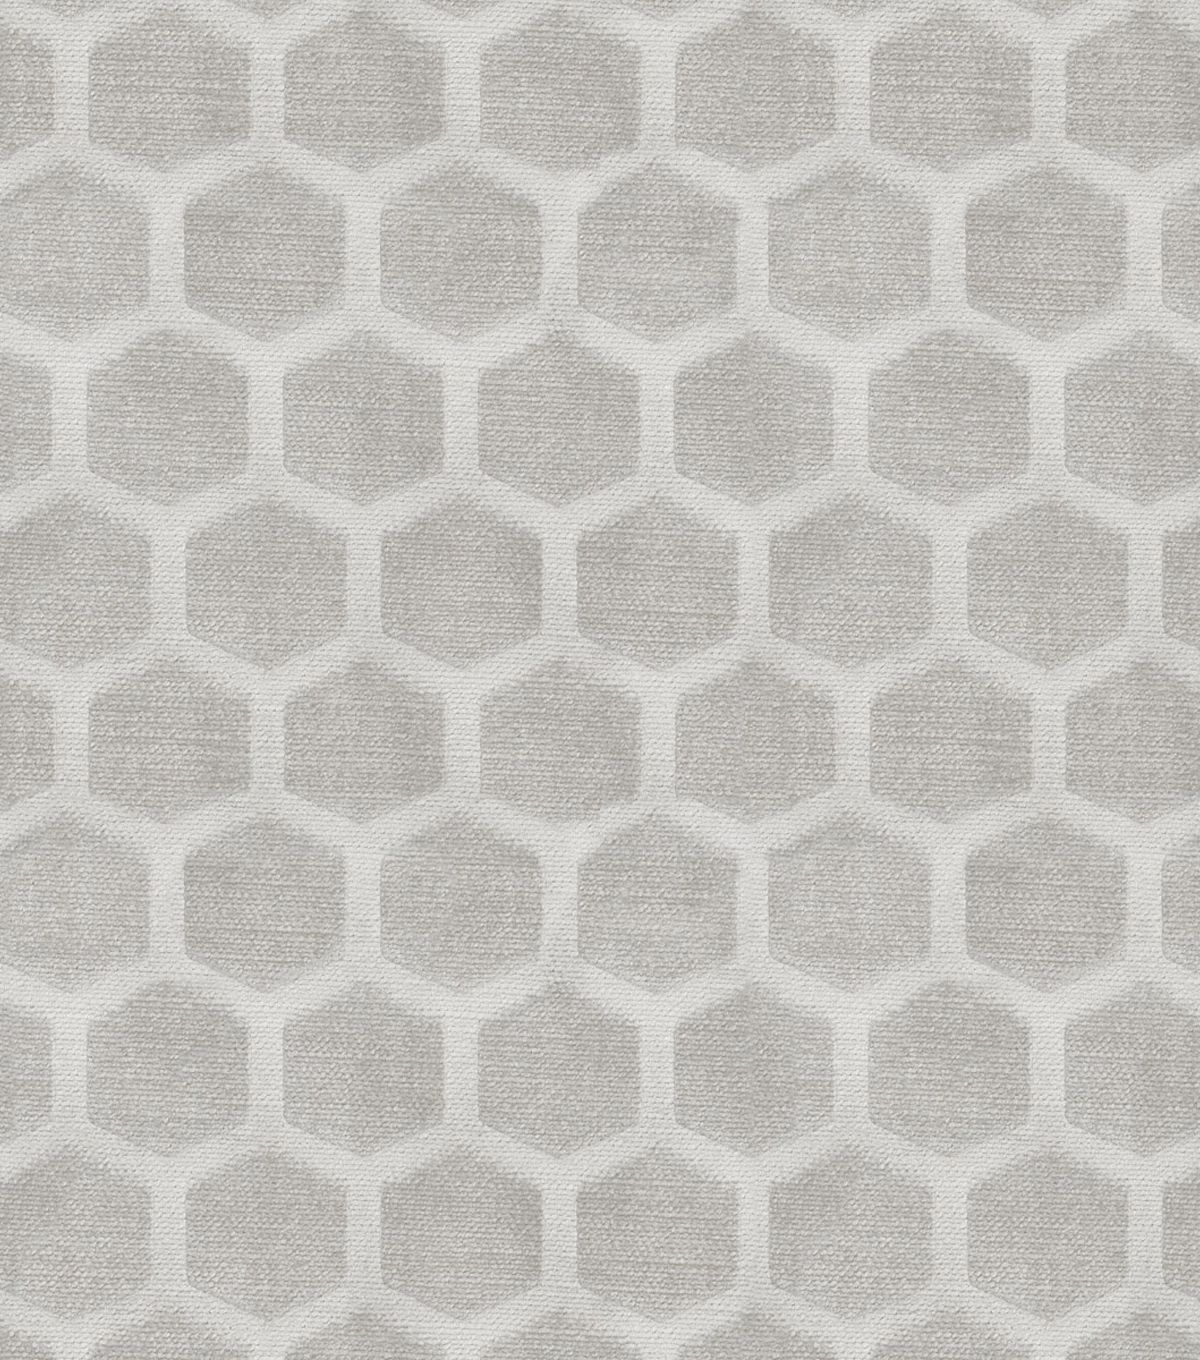 Upholstery Fabric- Waverly Symmetry/Frost at Joann.com | HHK Home ...